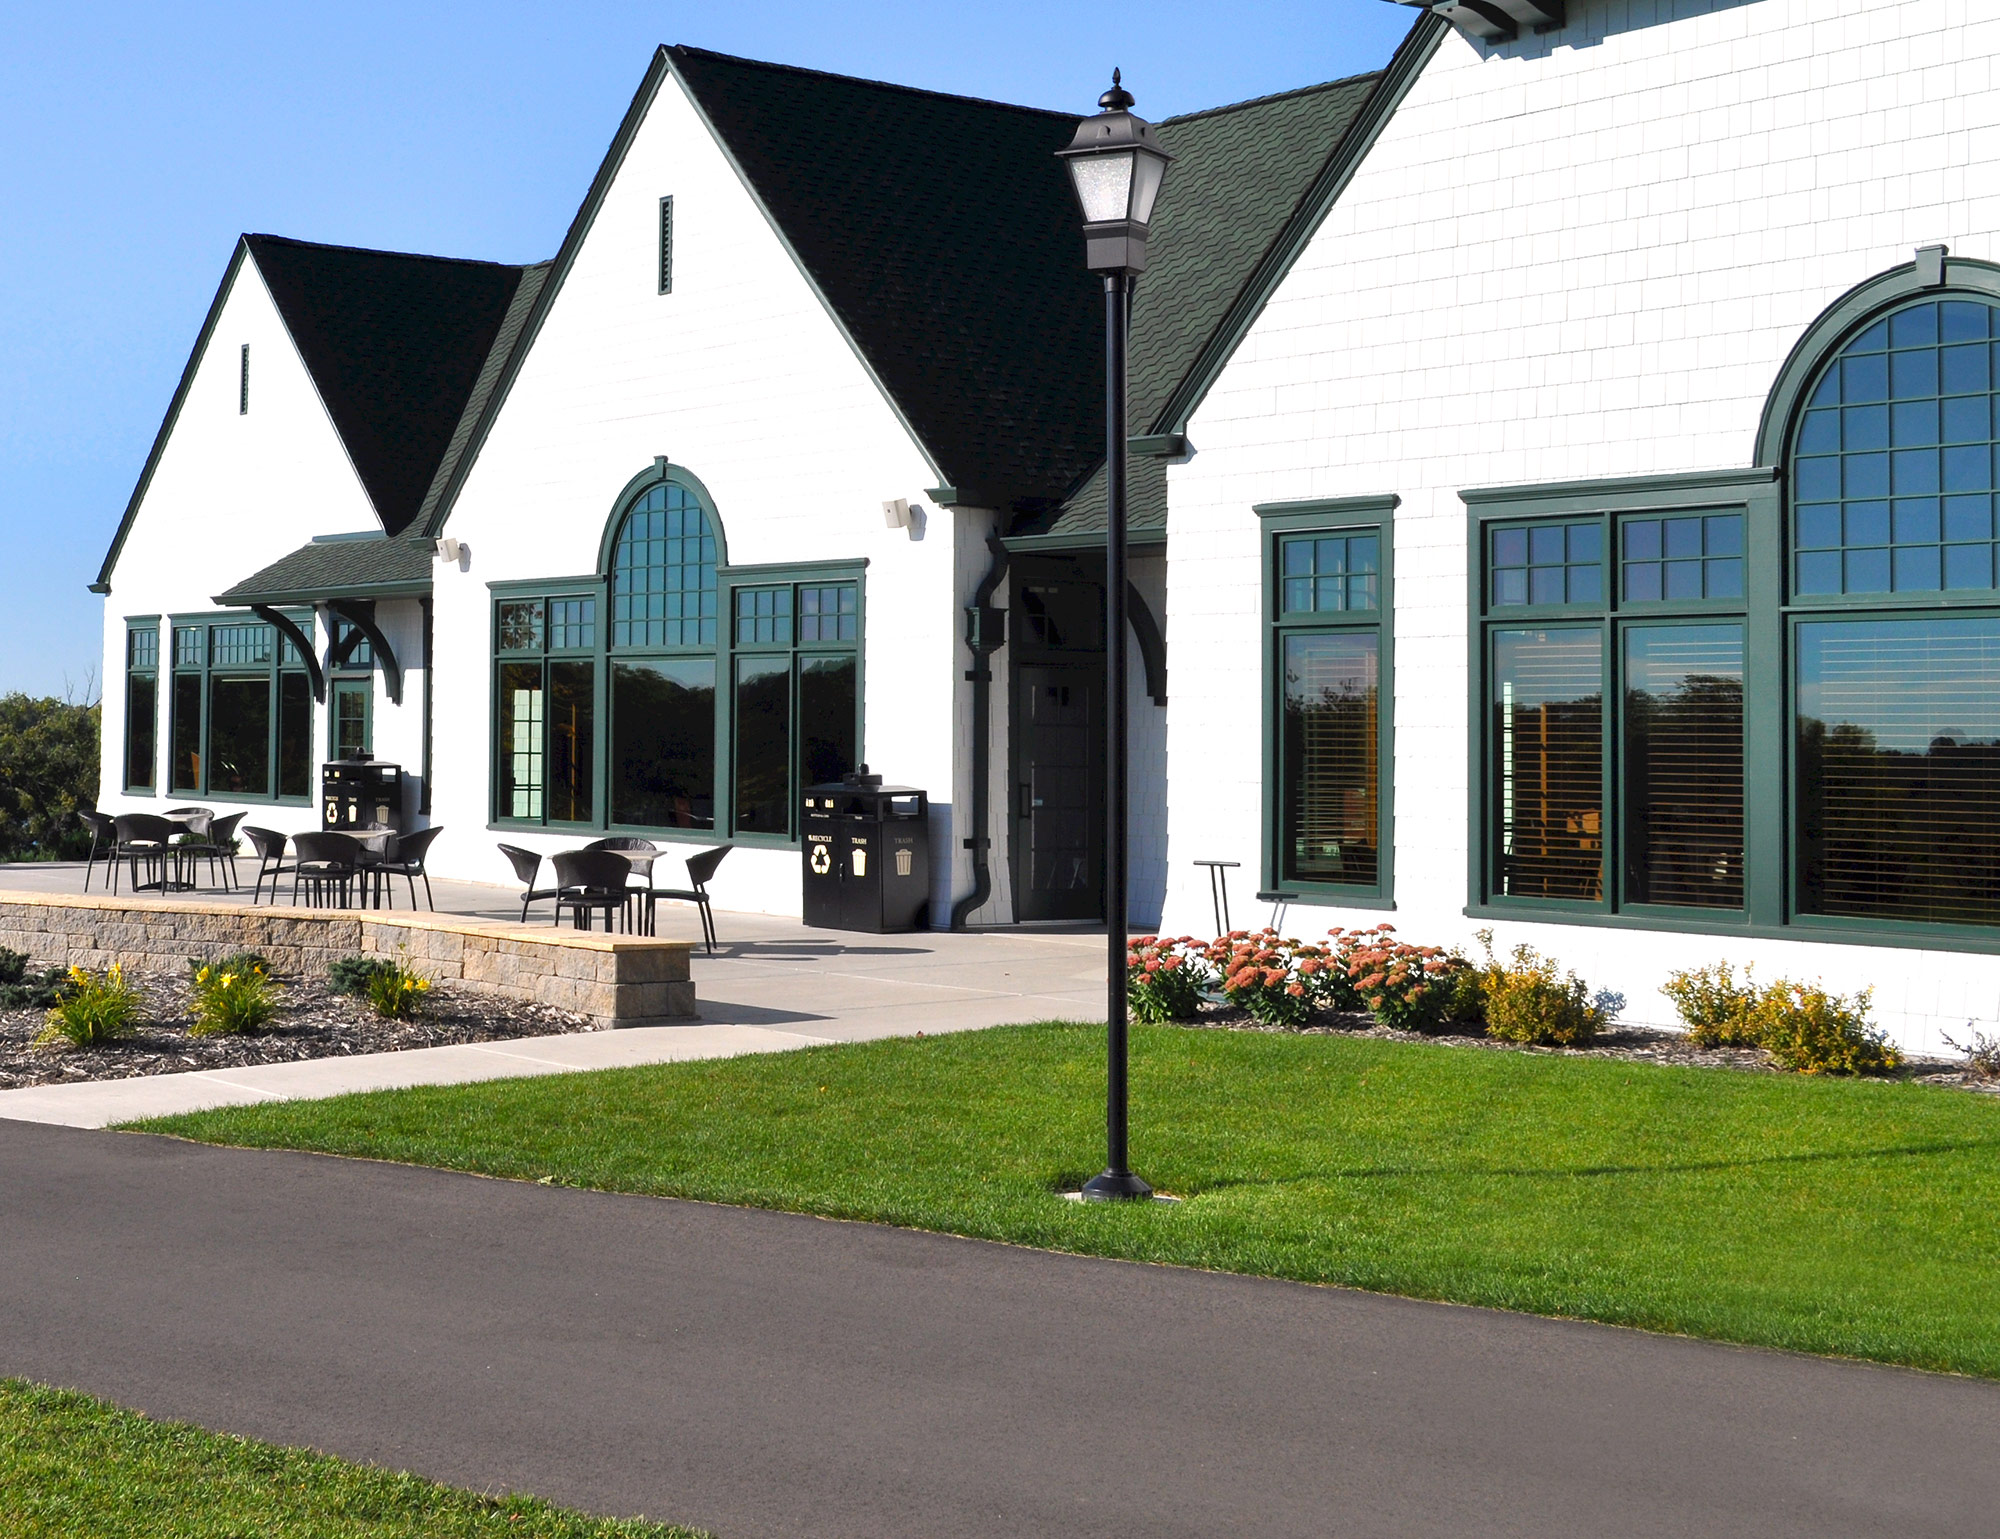 TERTIARY_-_Keller_Golf_Course_Clubhouse_-_Large_Image_at_TOP